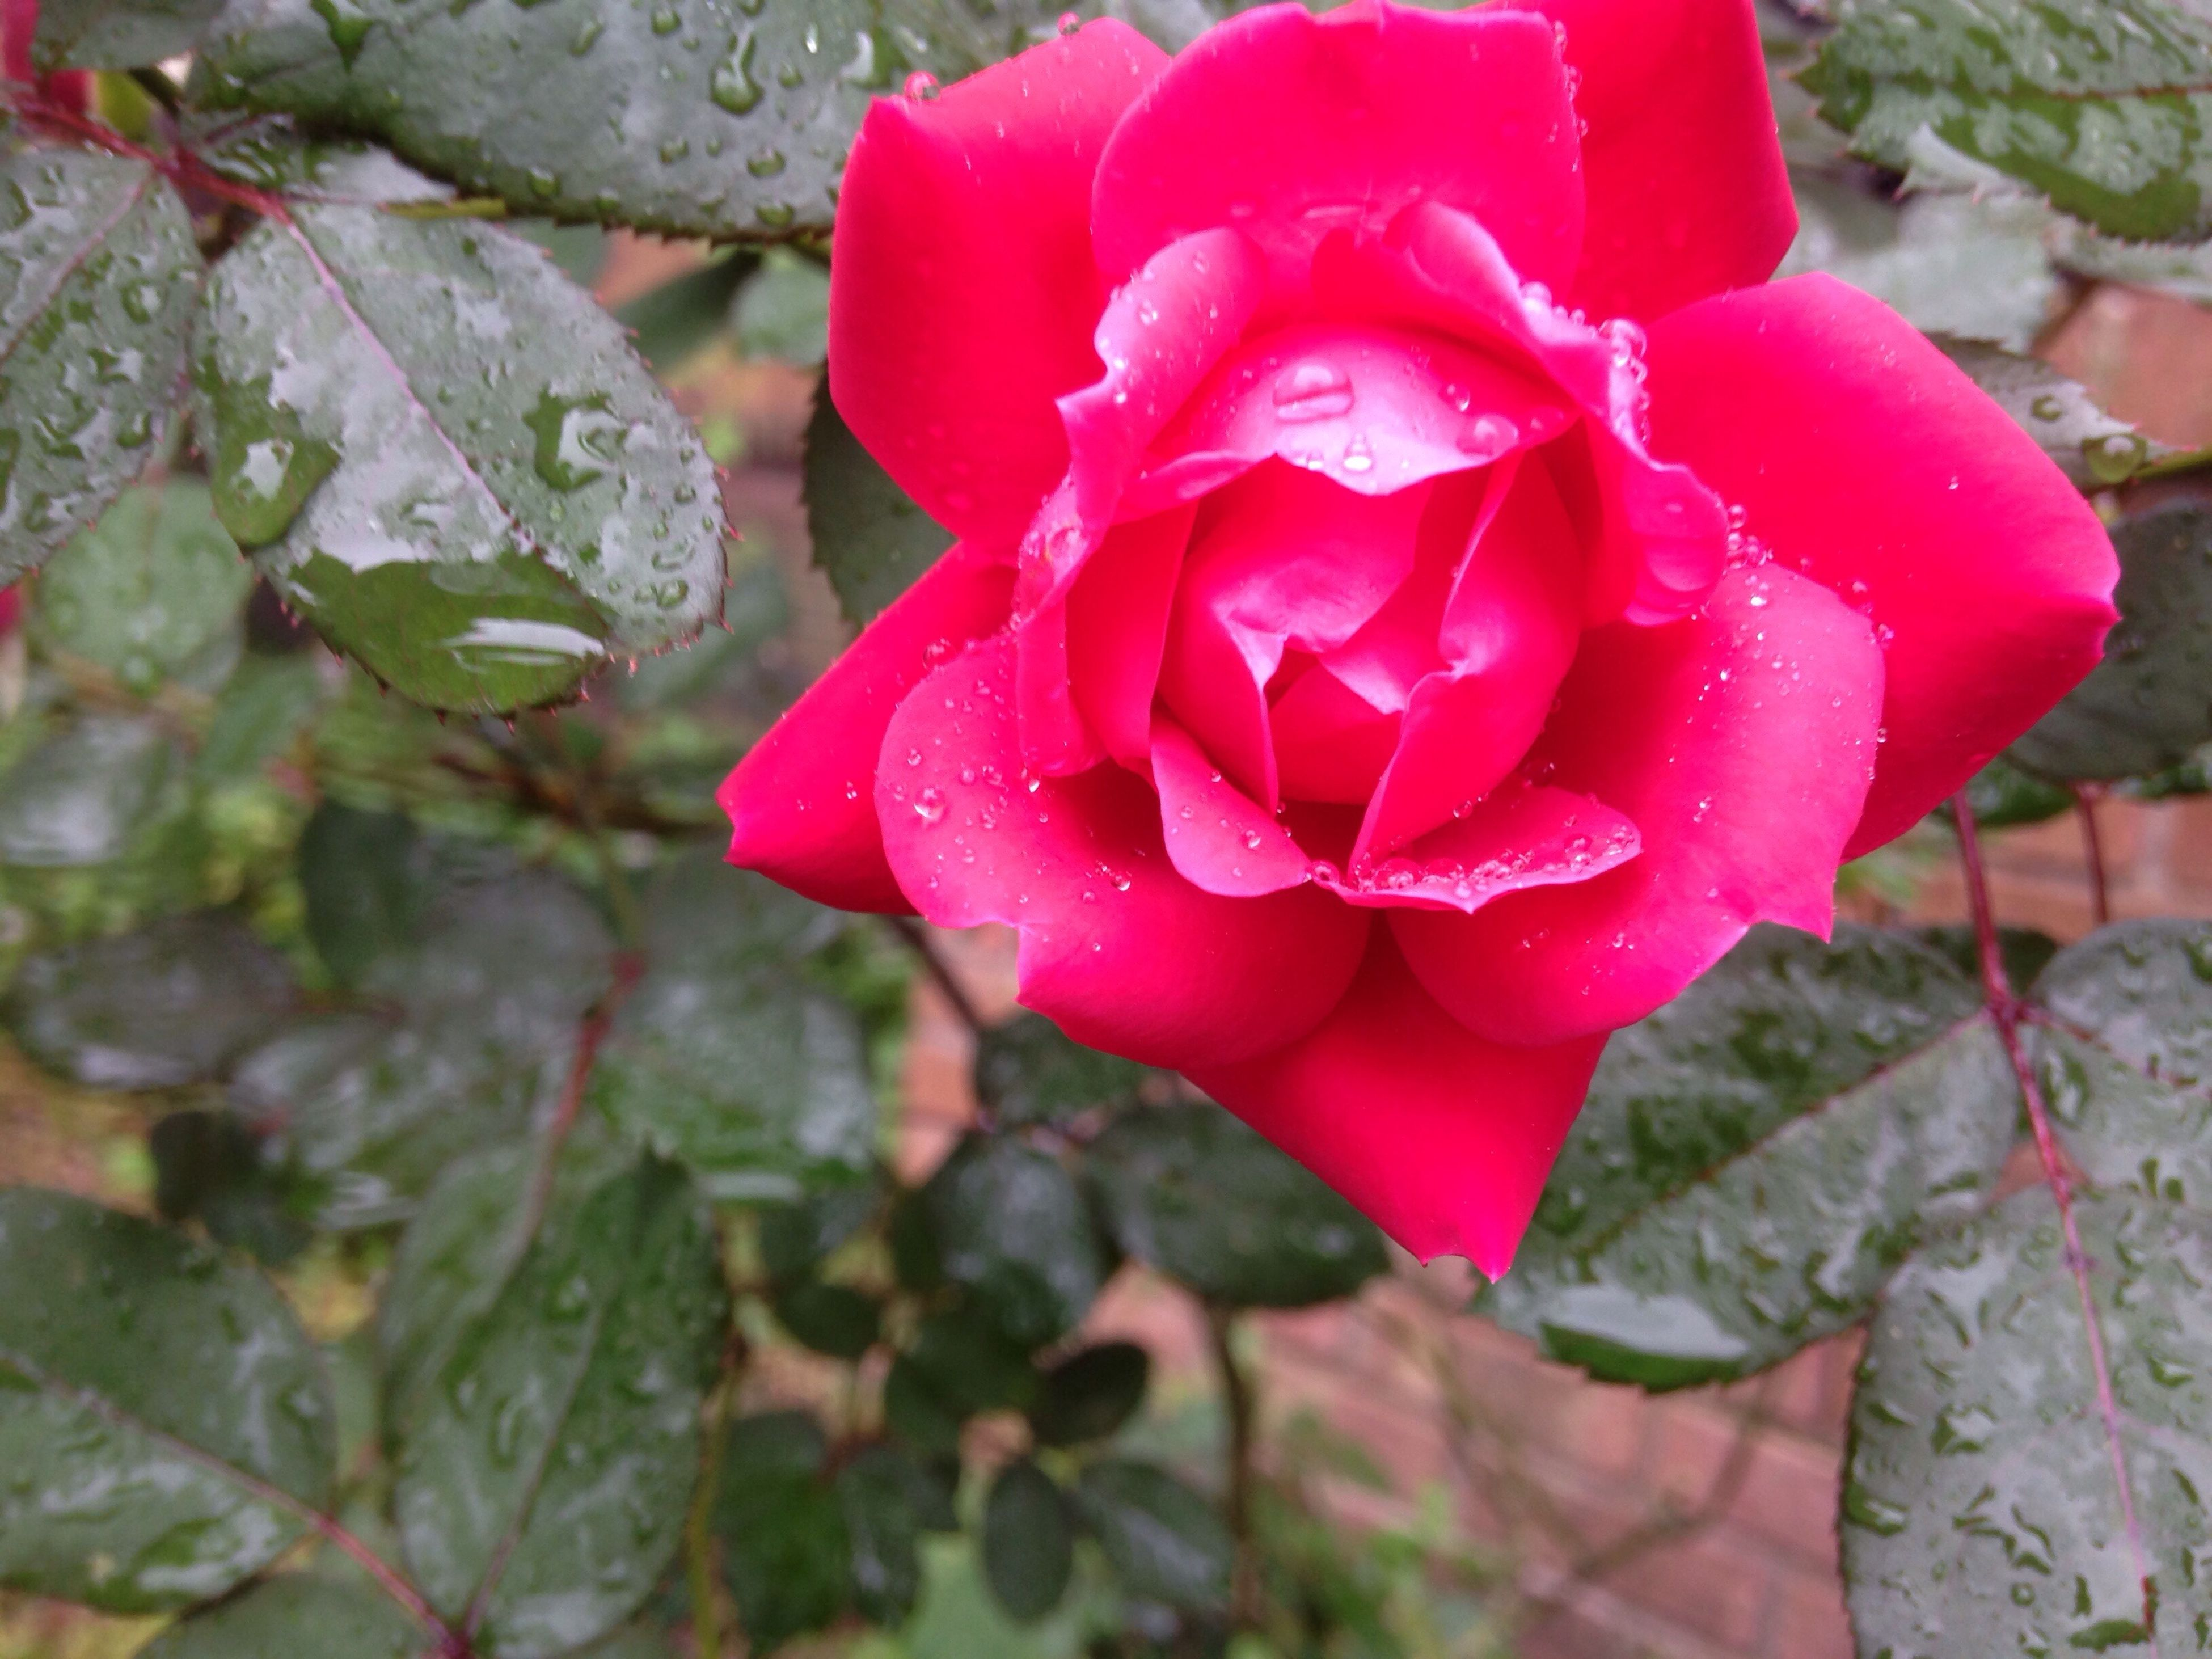 nature, wet, flower, petal, growth, beauty in nature, rain, water, drop, fragility, plant, freshness, rose - flower, flower head, pink color, rainy season, red, outdoors, close-up, leaf, no people, day, raindrop